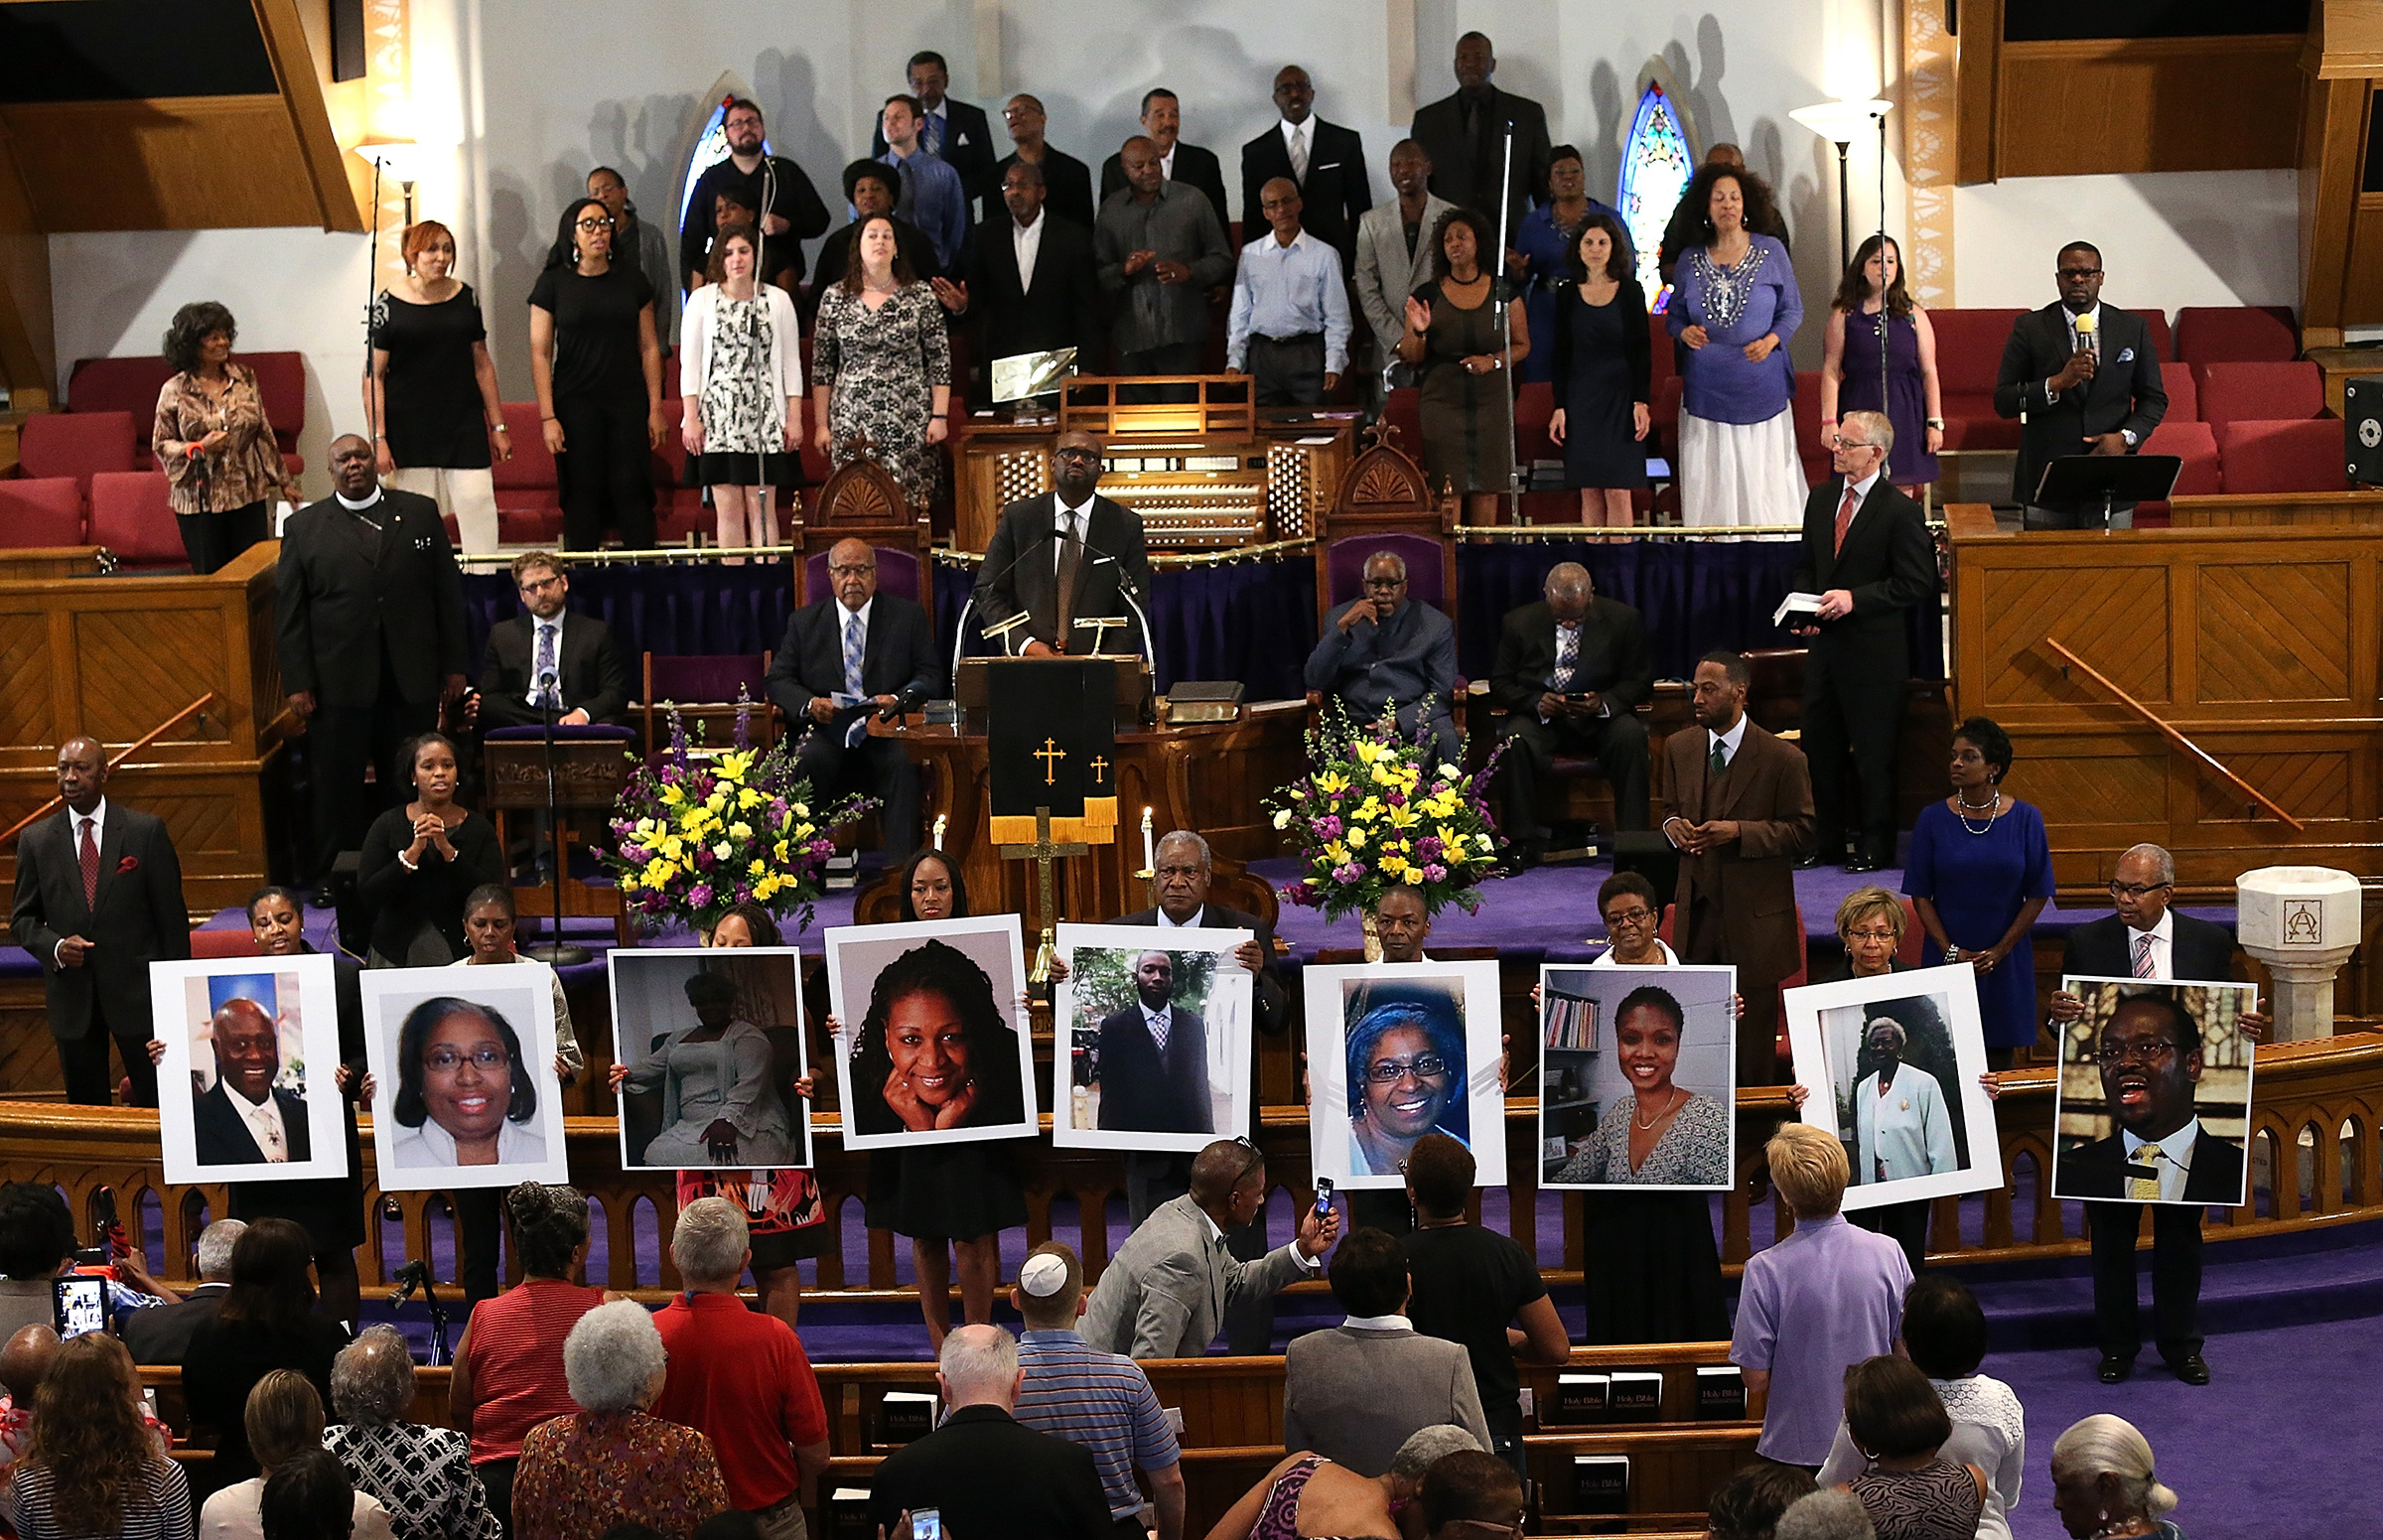 Photographs of the nine victims killed at the Emanuel African Methodist Episcopal Church in Charleston are held up by congregants during a prayer vigil at the the Metropolitan AME Church June 19, 2015 in Washington, DC.